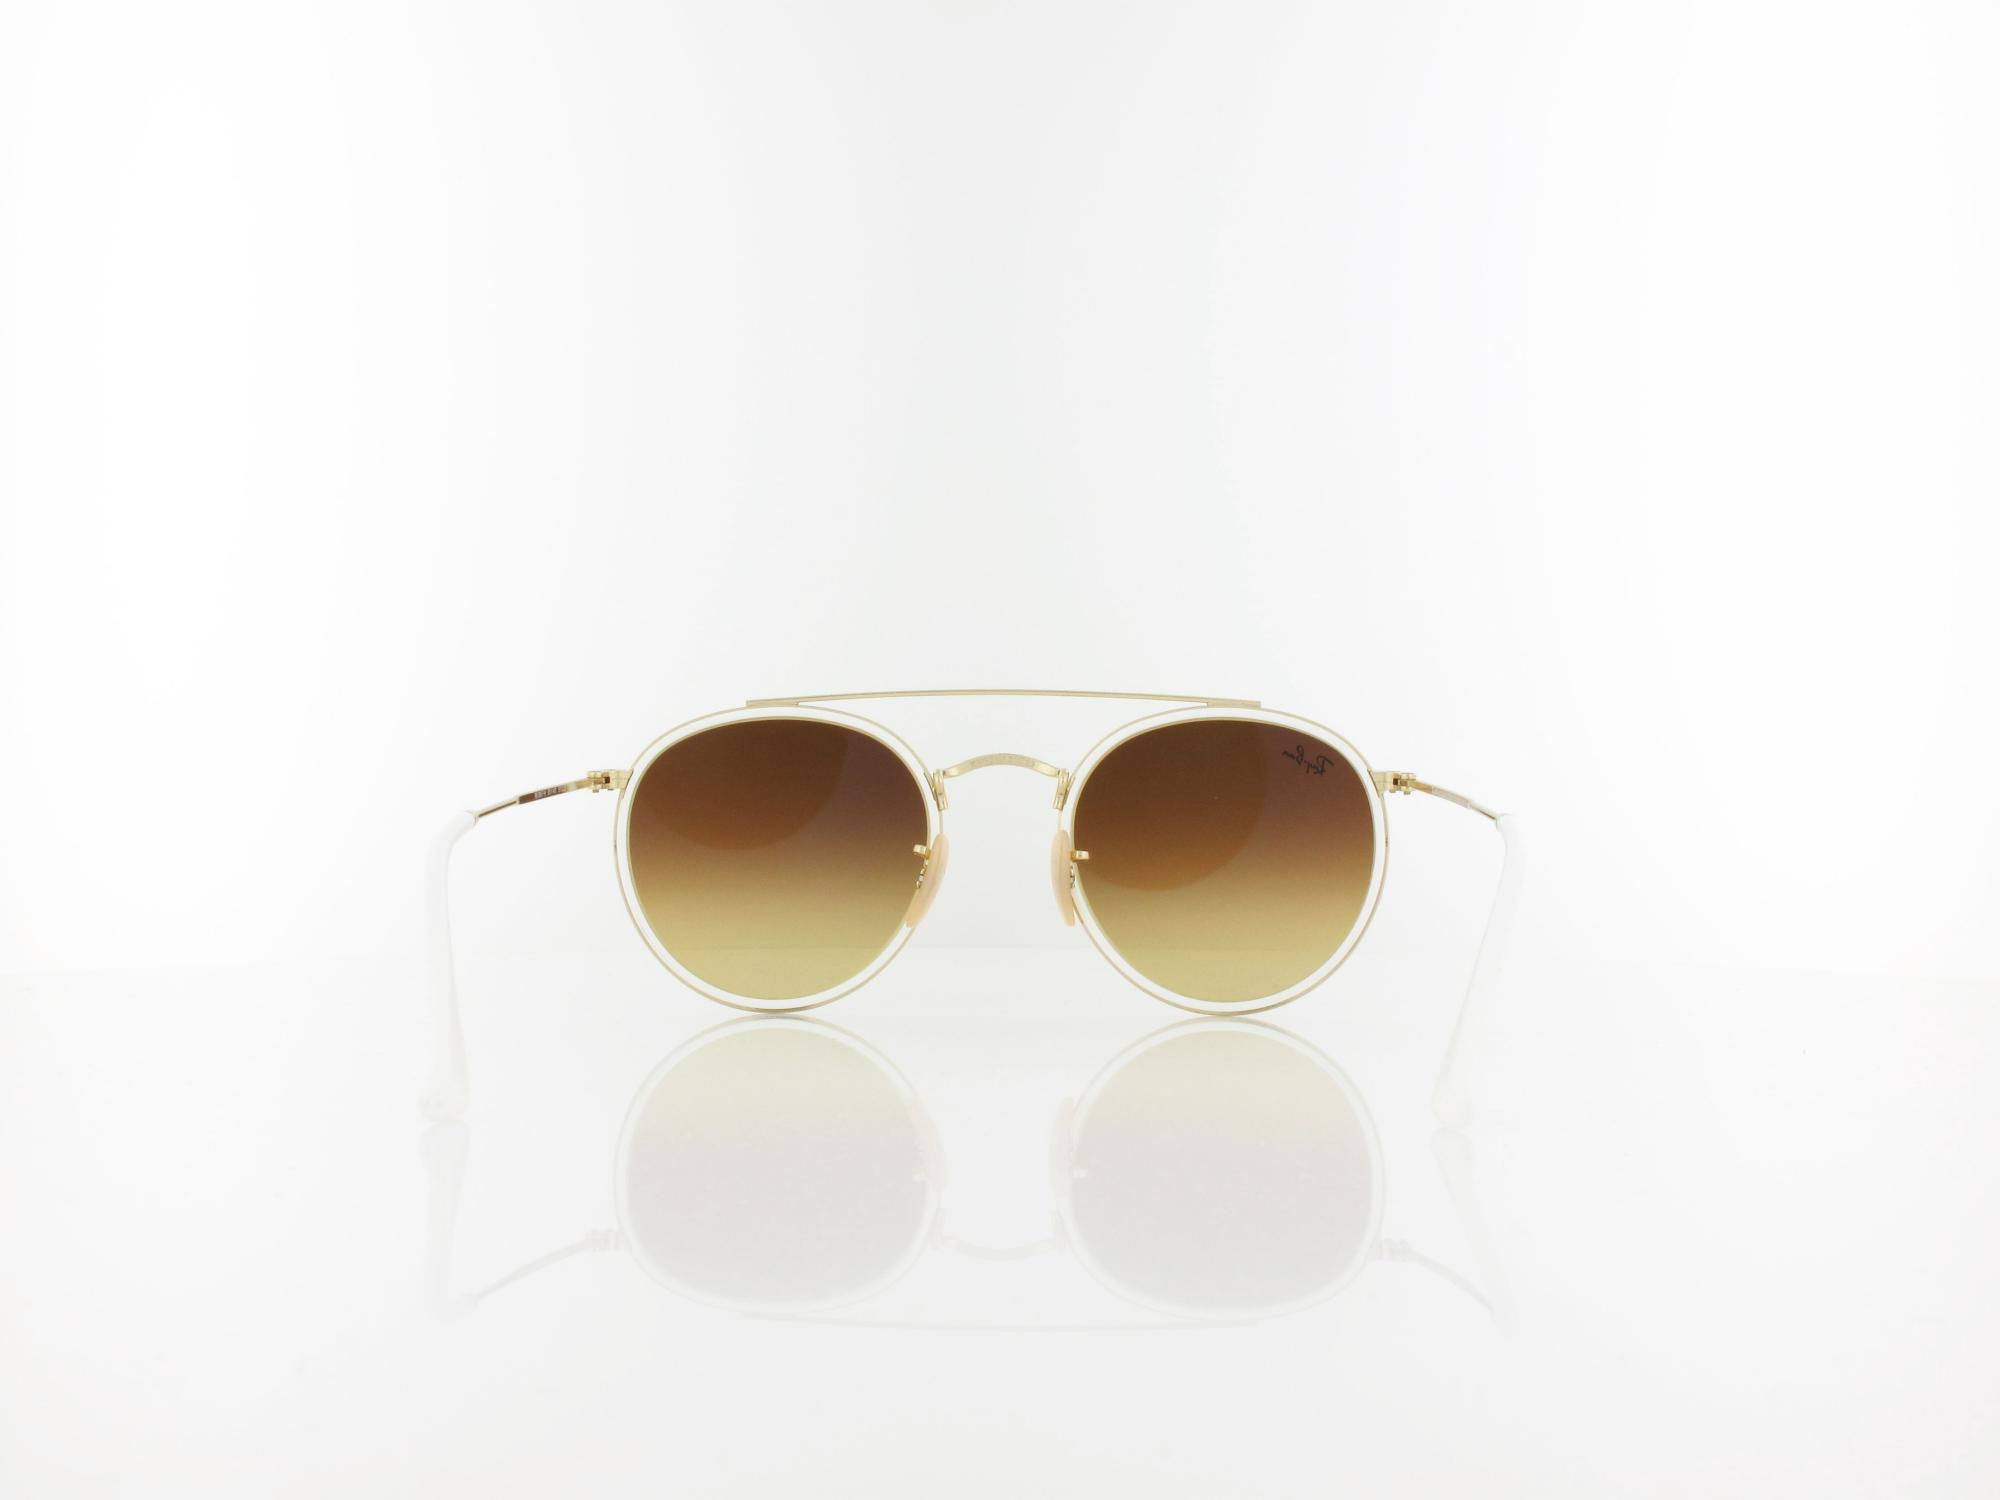 Ray Ban | RB3647N 001/4O 51 | gold / blue gradient flash